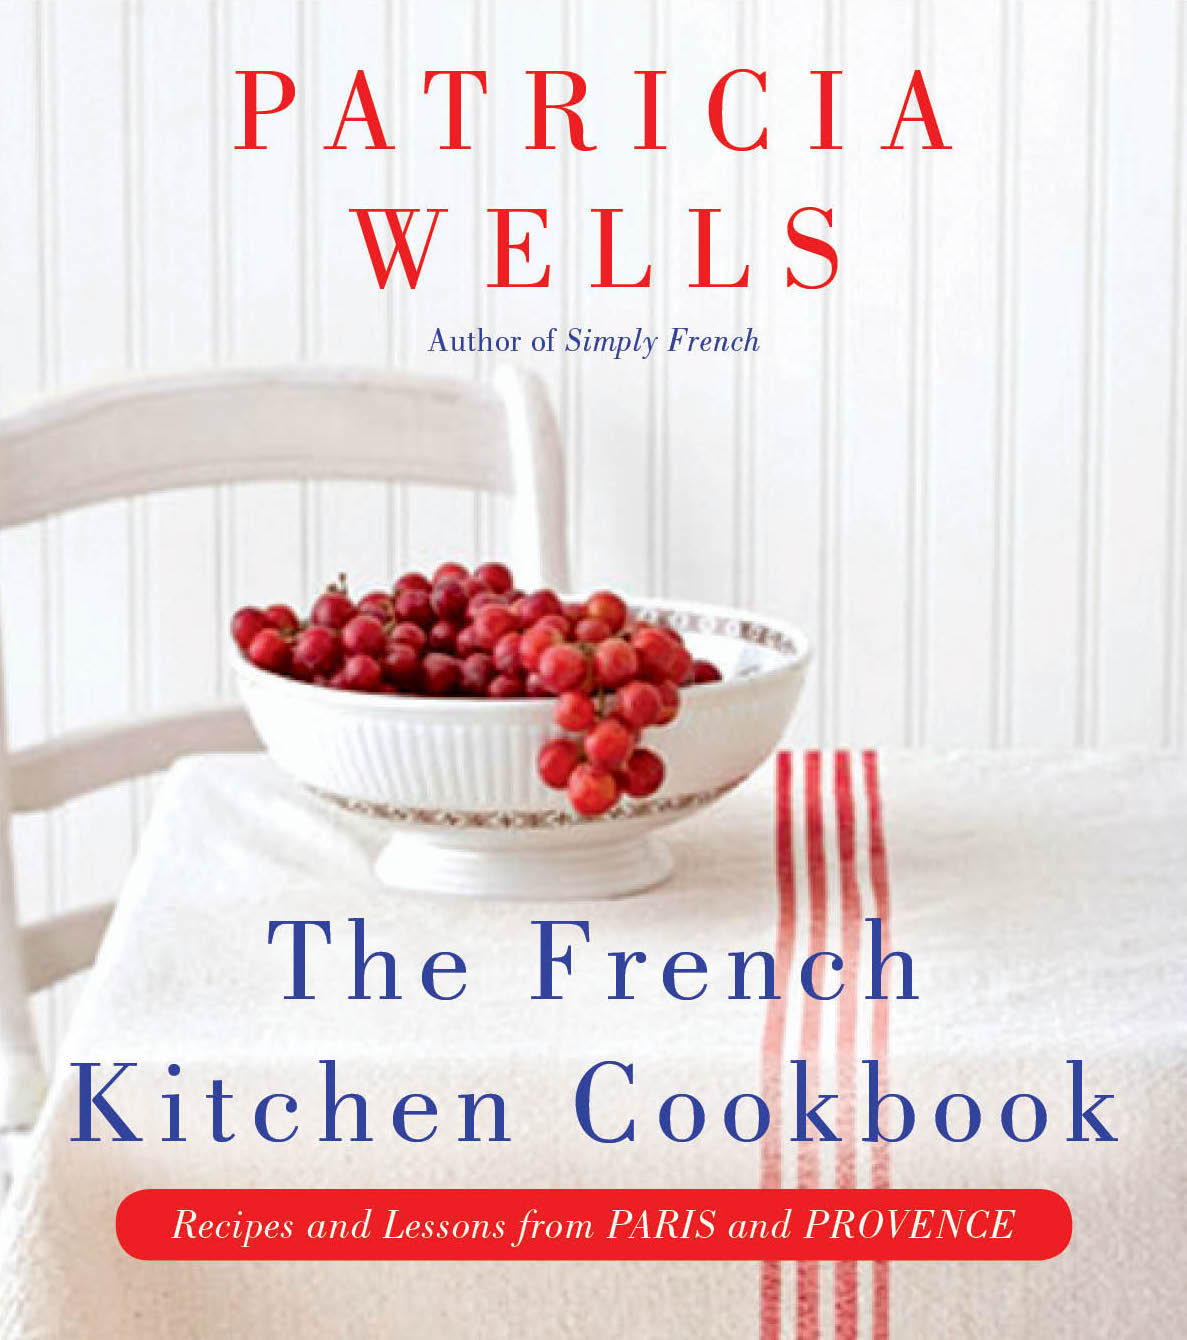 French Kitchen Cookbook.jpg